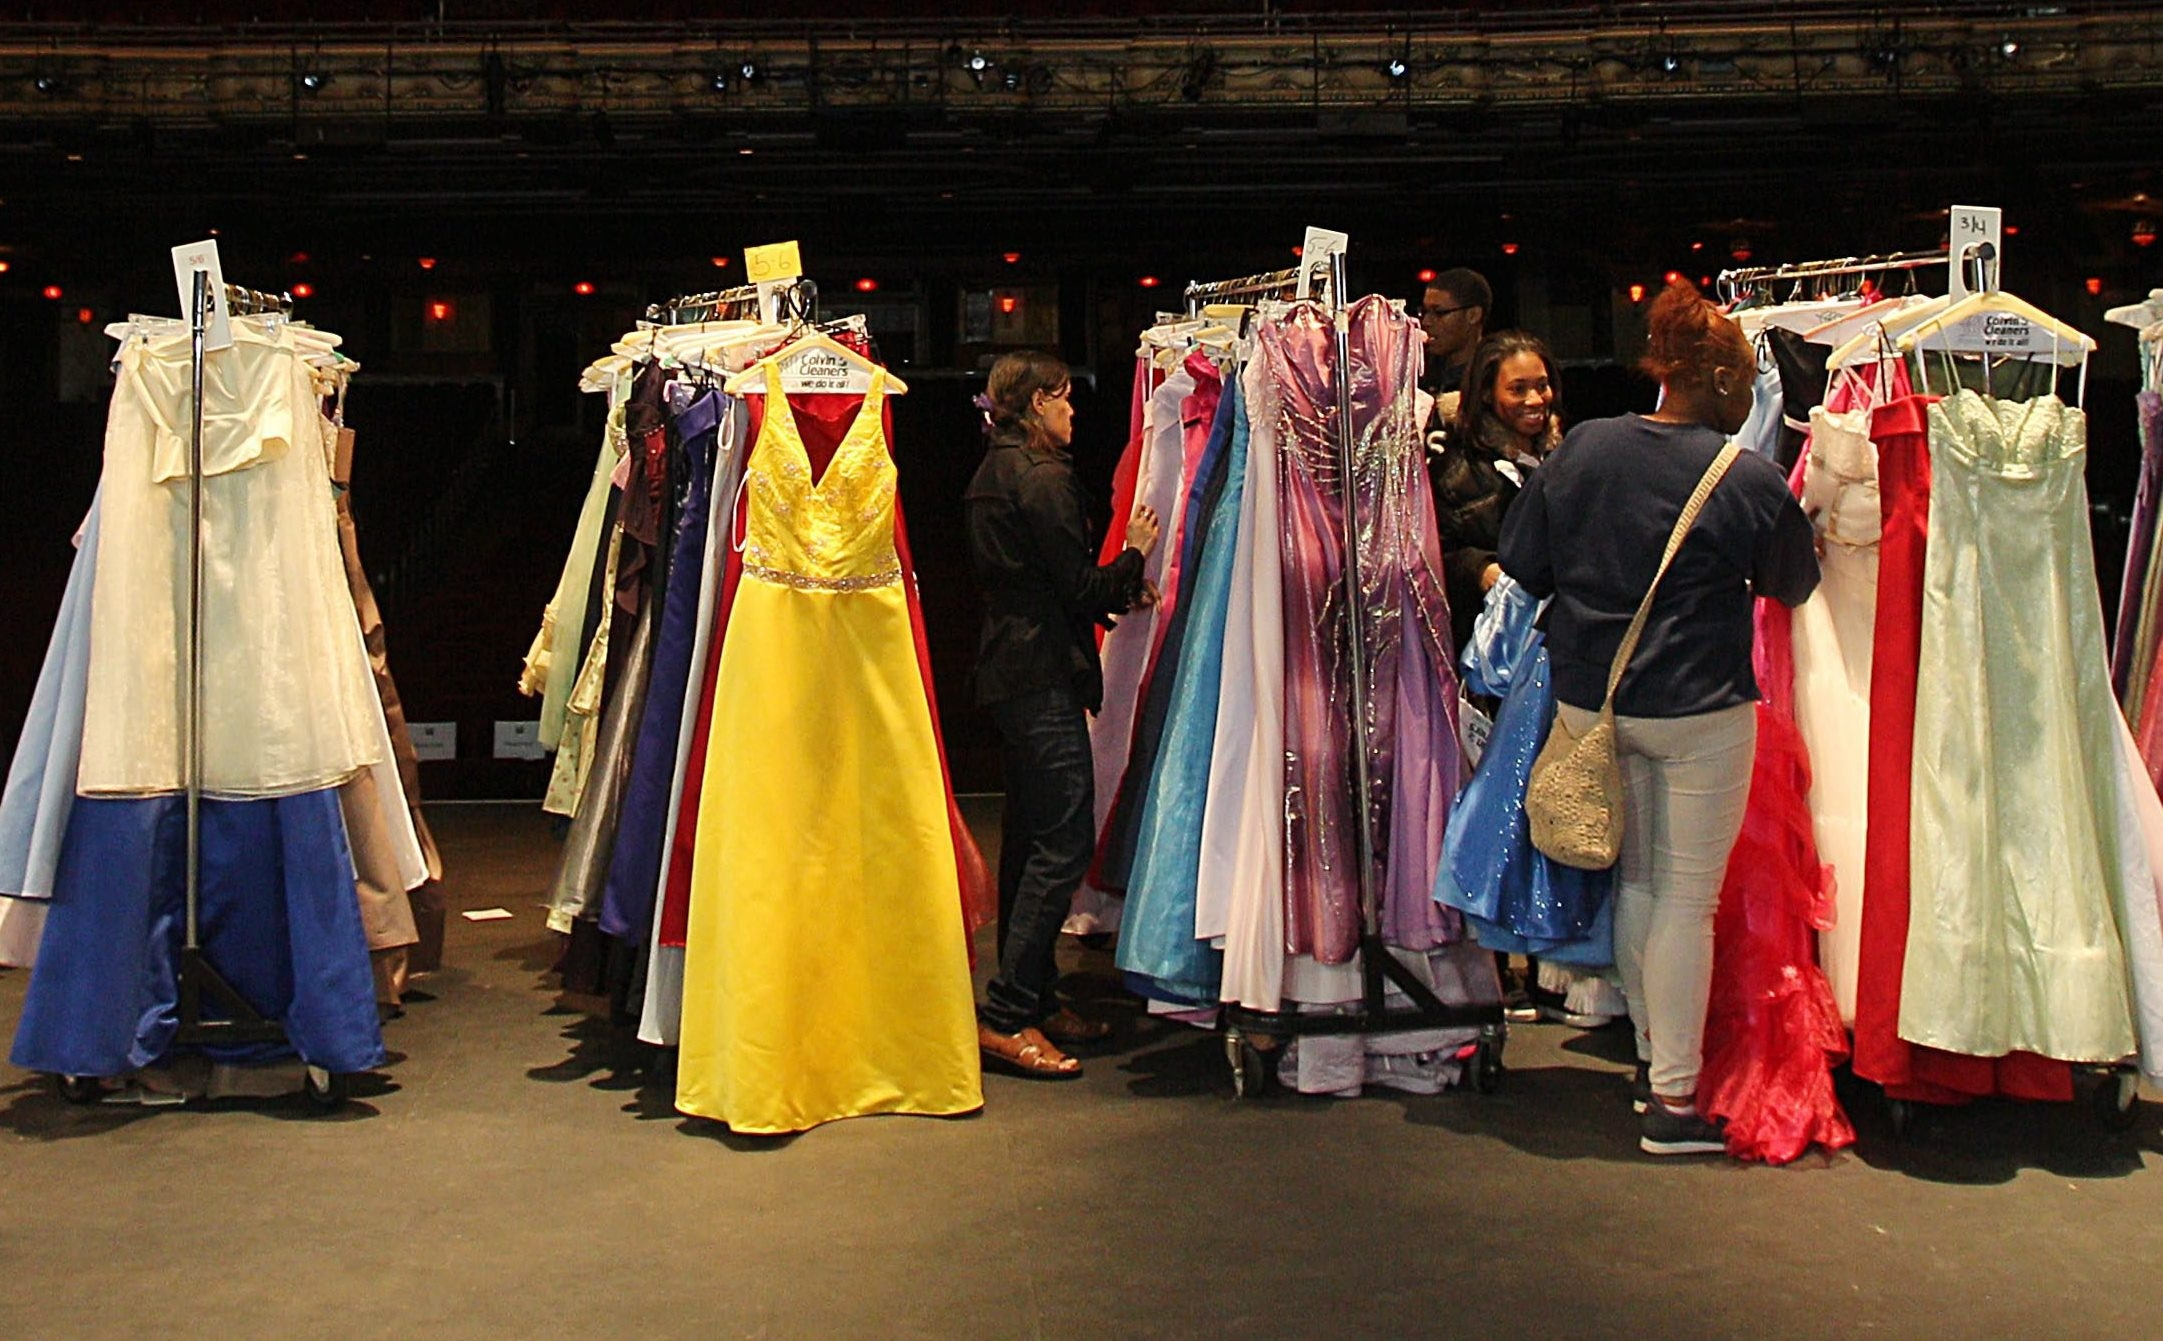 Gently used prom dresses will be collected for the seventh annual Prom Dress Drive. (Sharon Cantillon/Buffalo News file photo)